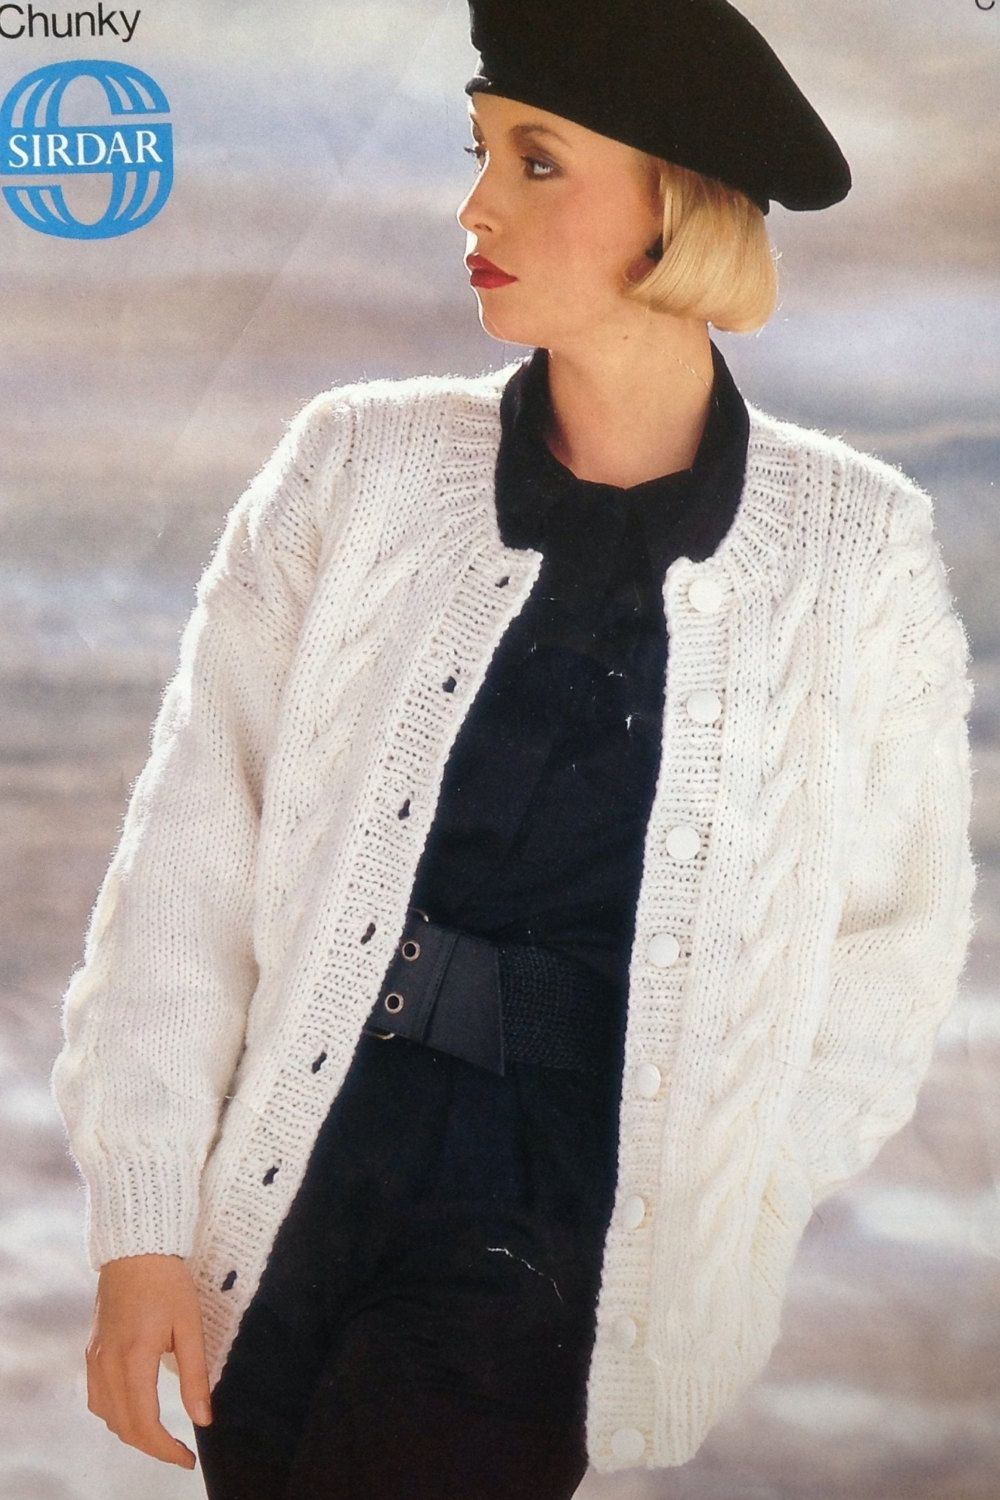 Ladies/ Girls Chunky Cable Knit Cardigan/ Jacket Knitting Pattern ...